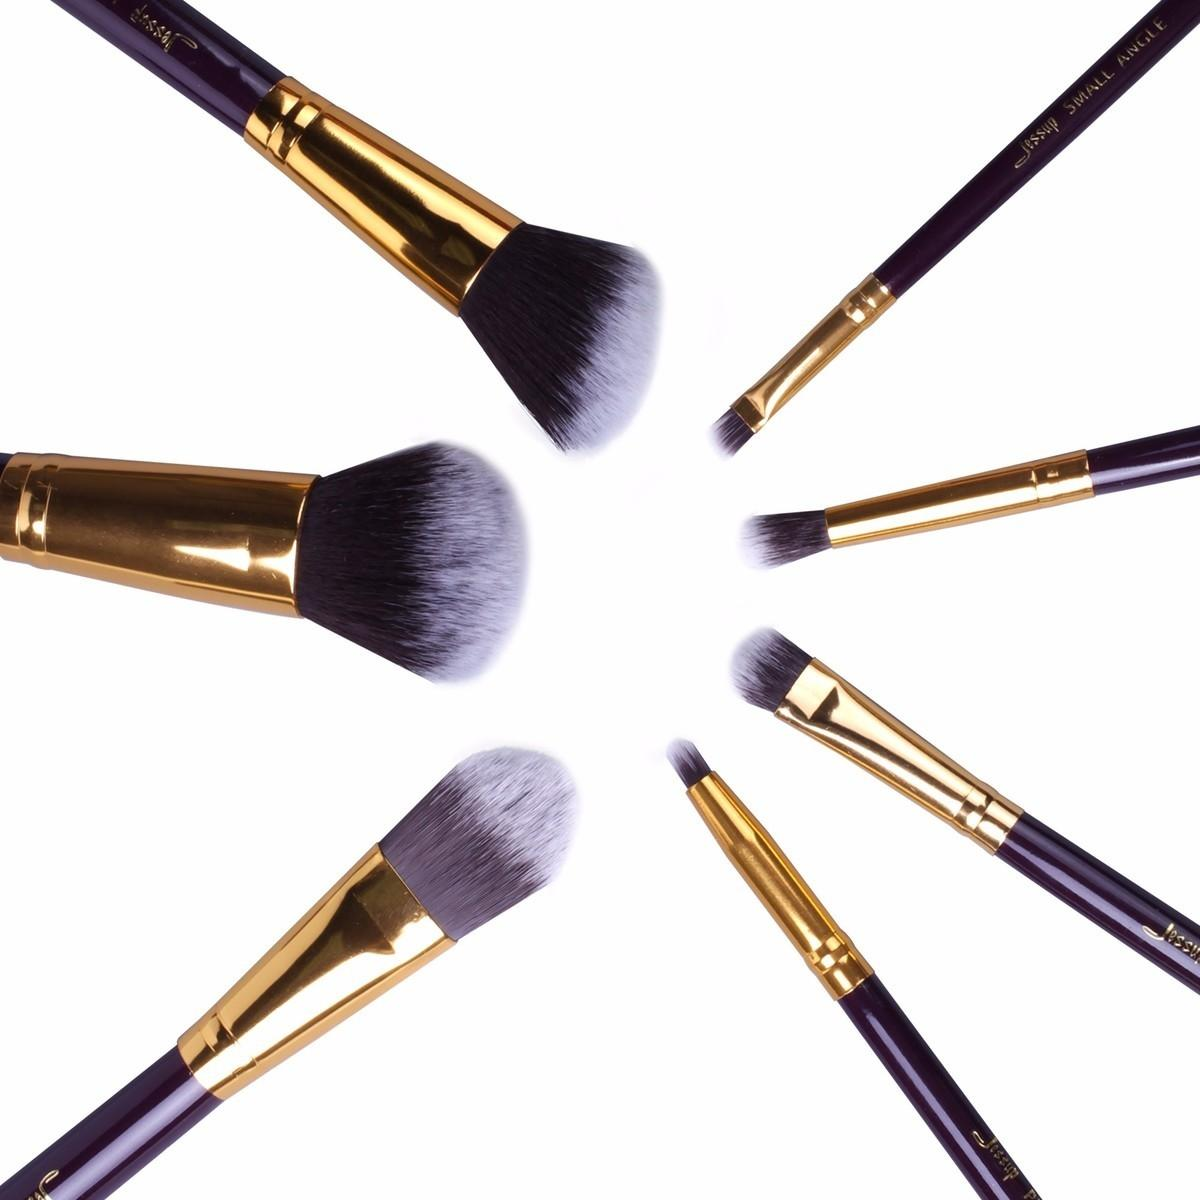 T107 7 PCs Travel Series Brush Set - Black and Golden